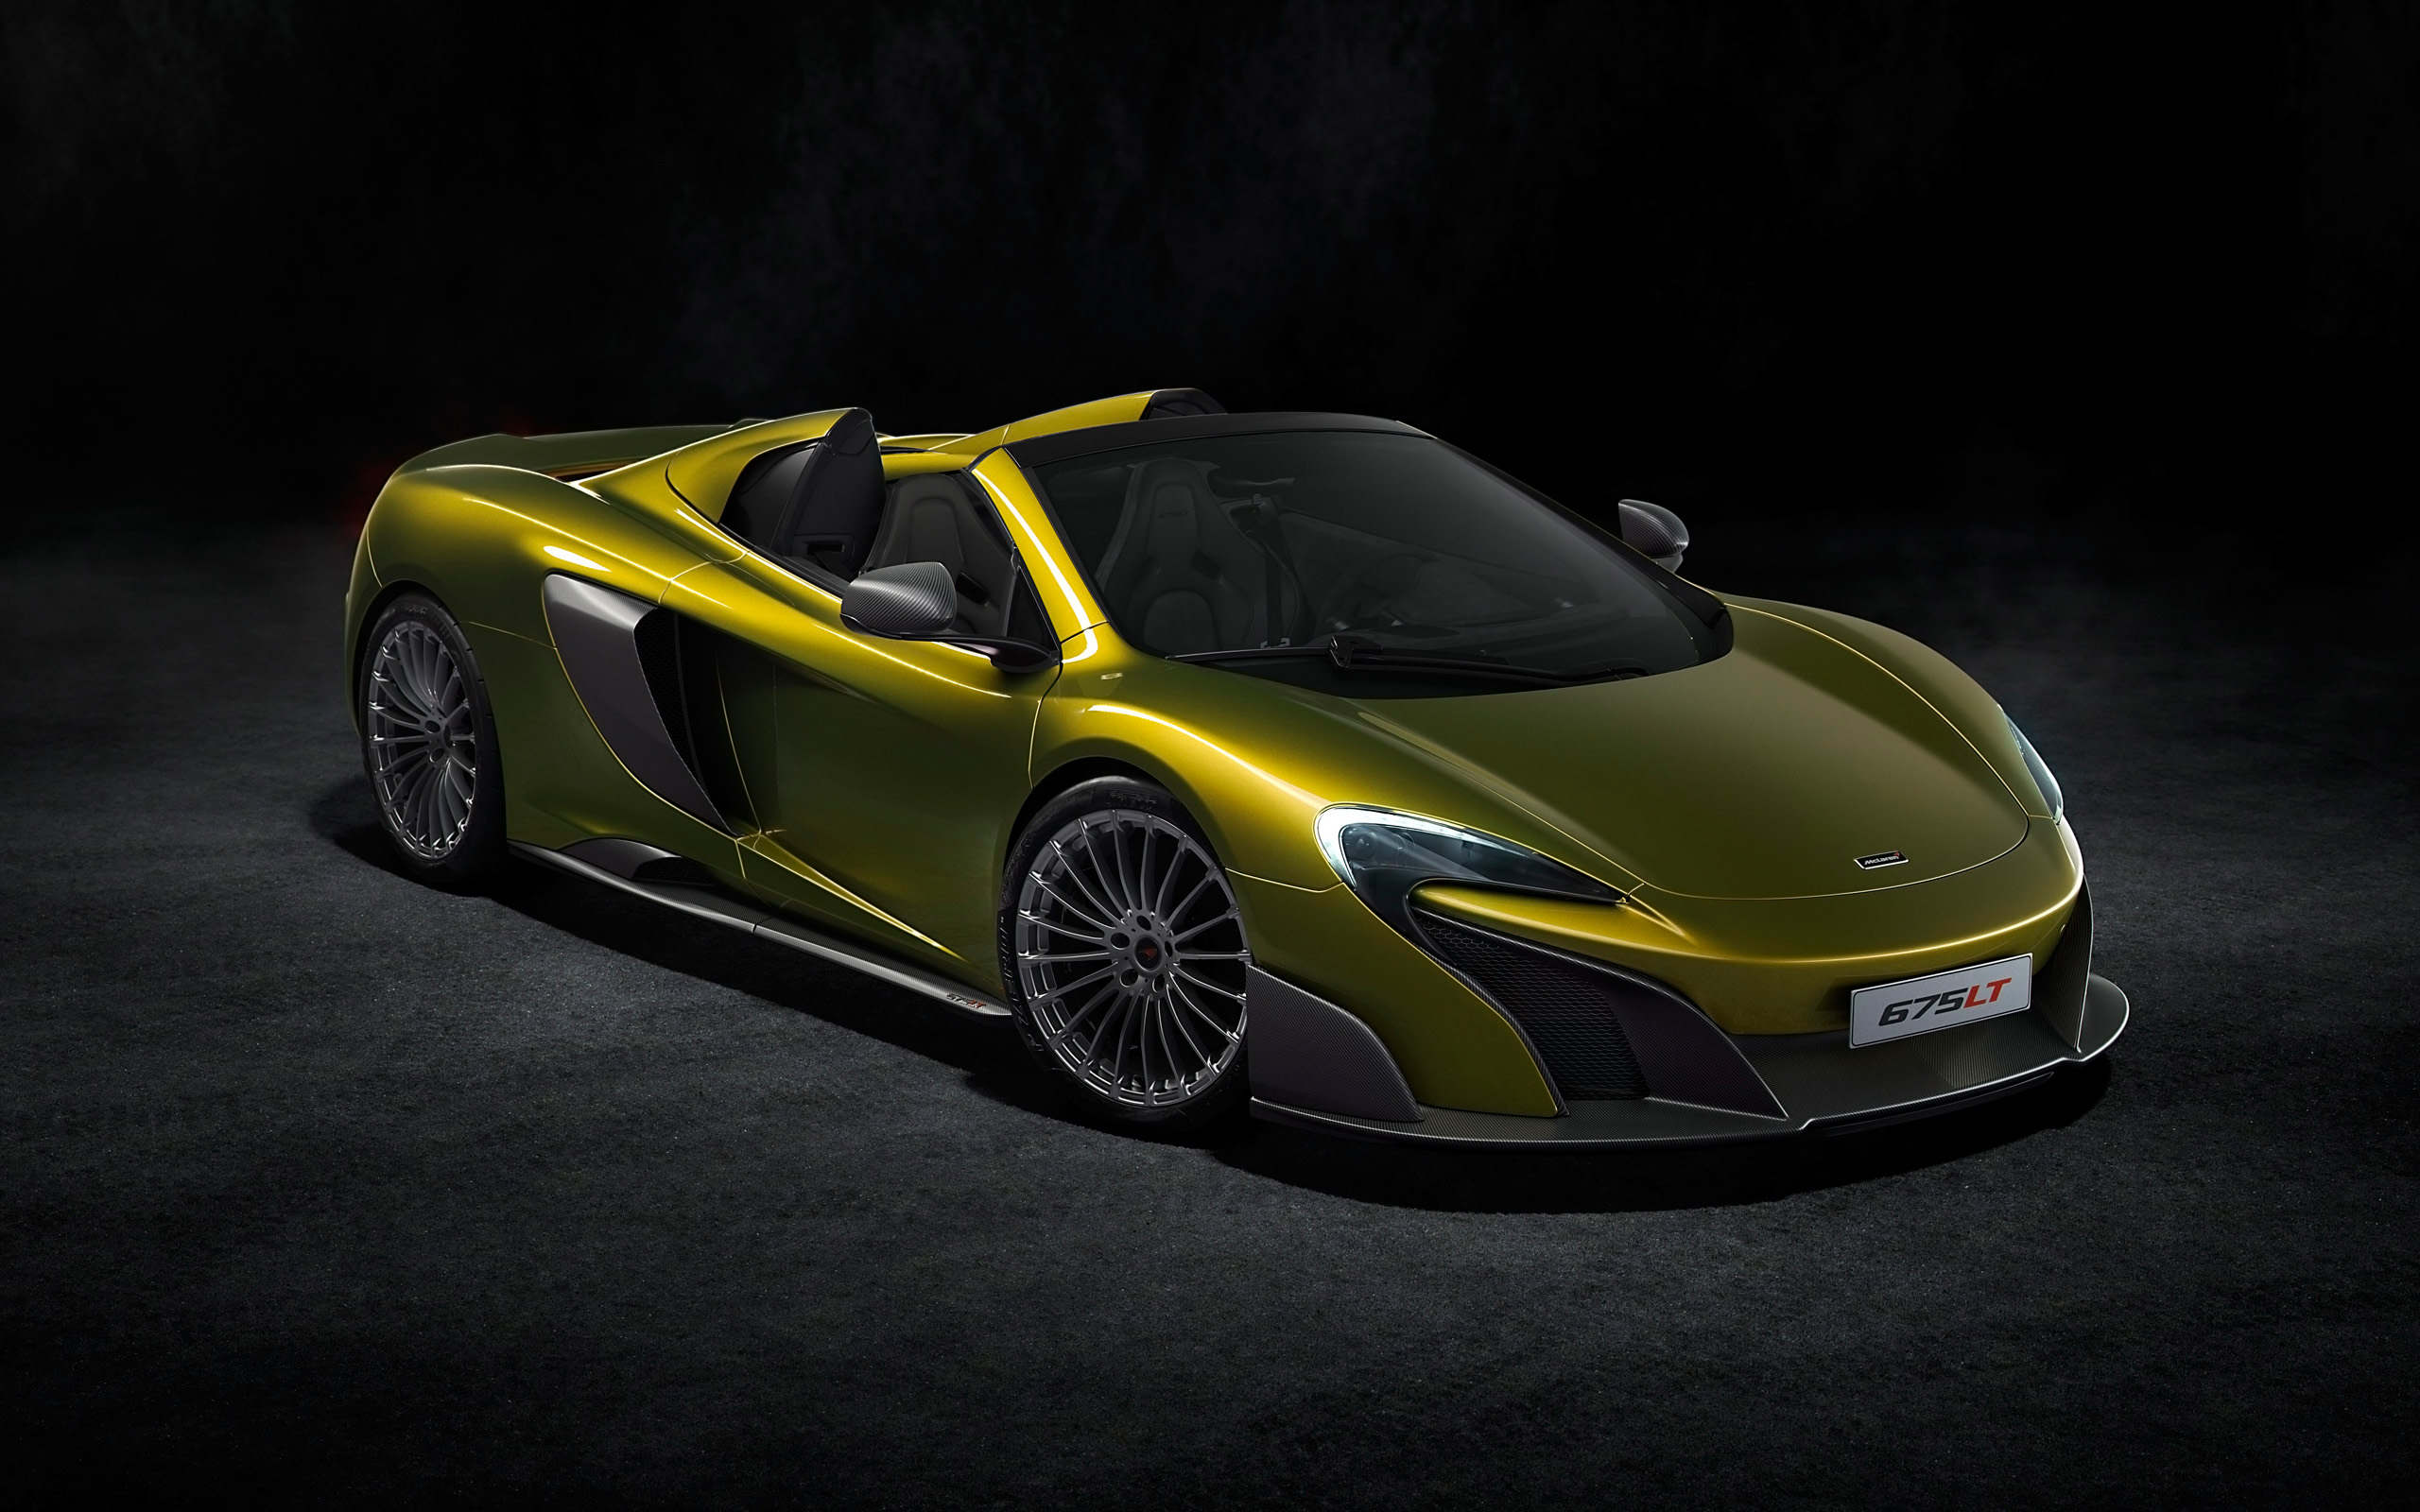 2016 mclaren 675lt spider wallpaper 48906